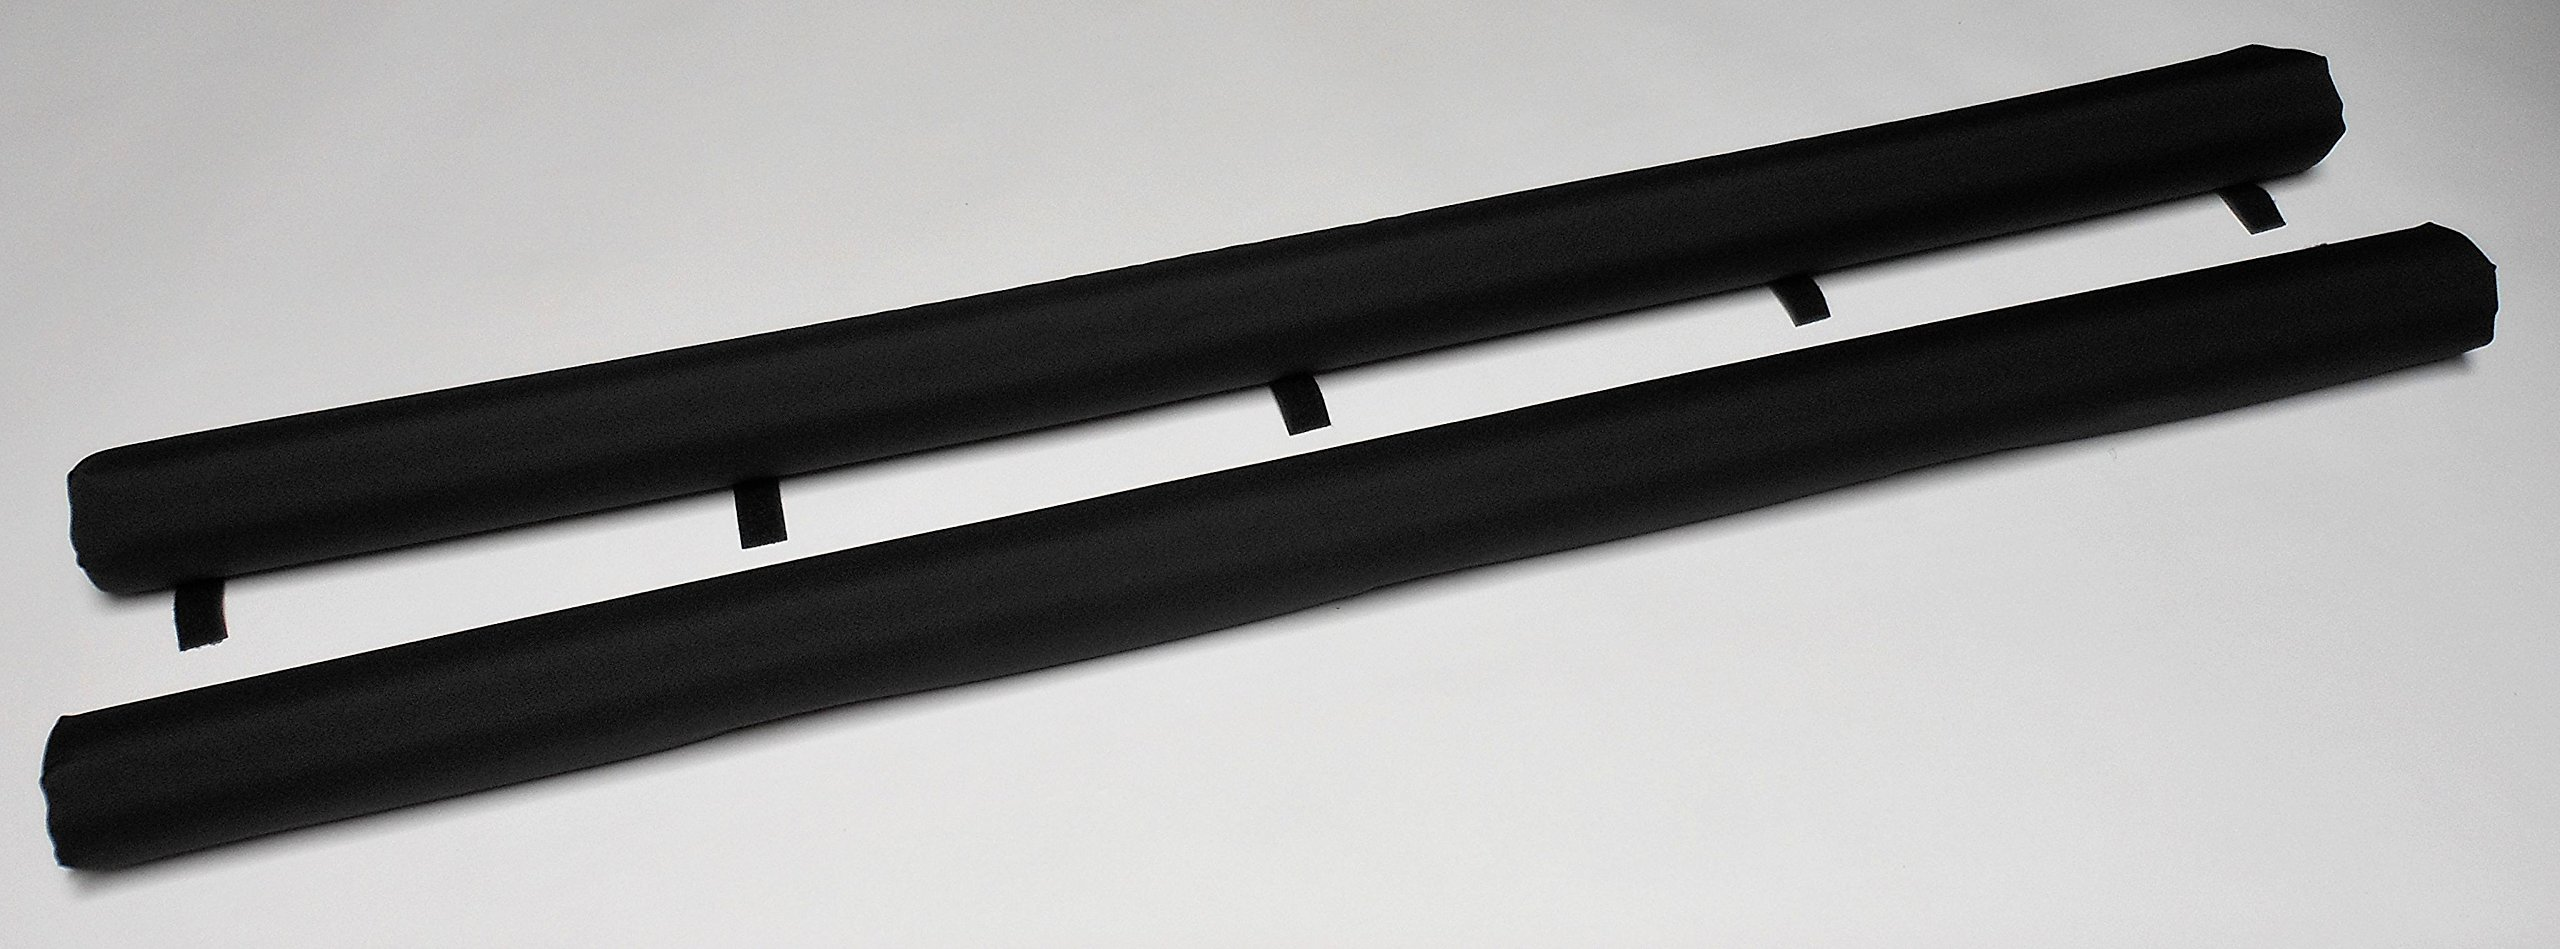 Vitamin Blue 54'' Roof Rack Pads Non Fade Black - Non Logo (MADE in U.S.A.) REGULAR PADS by Vitamin Blue